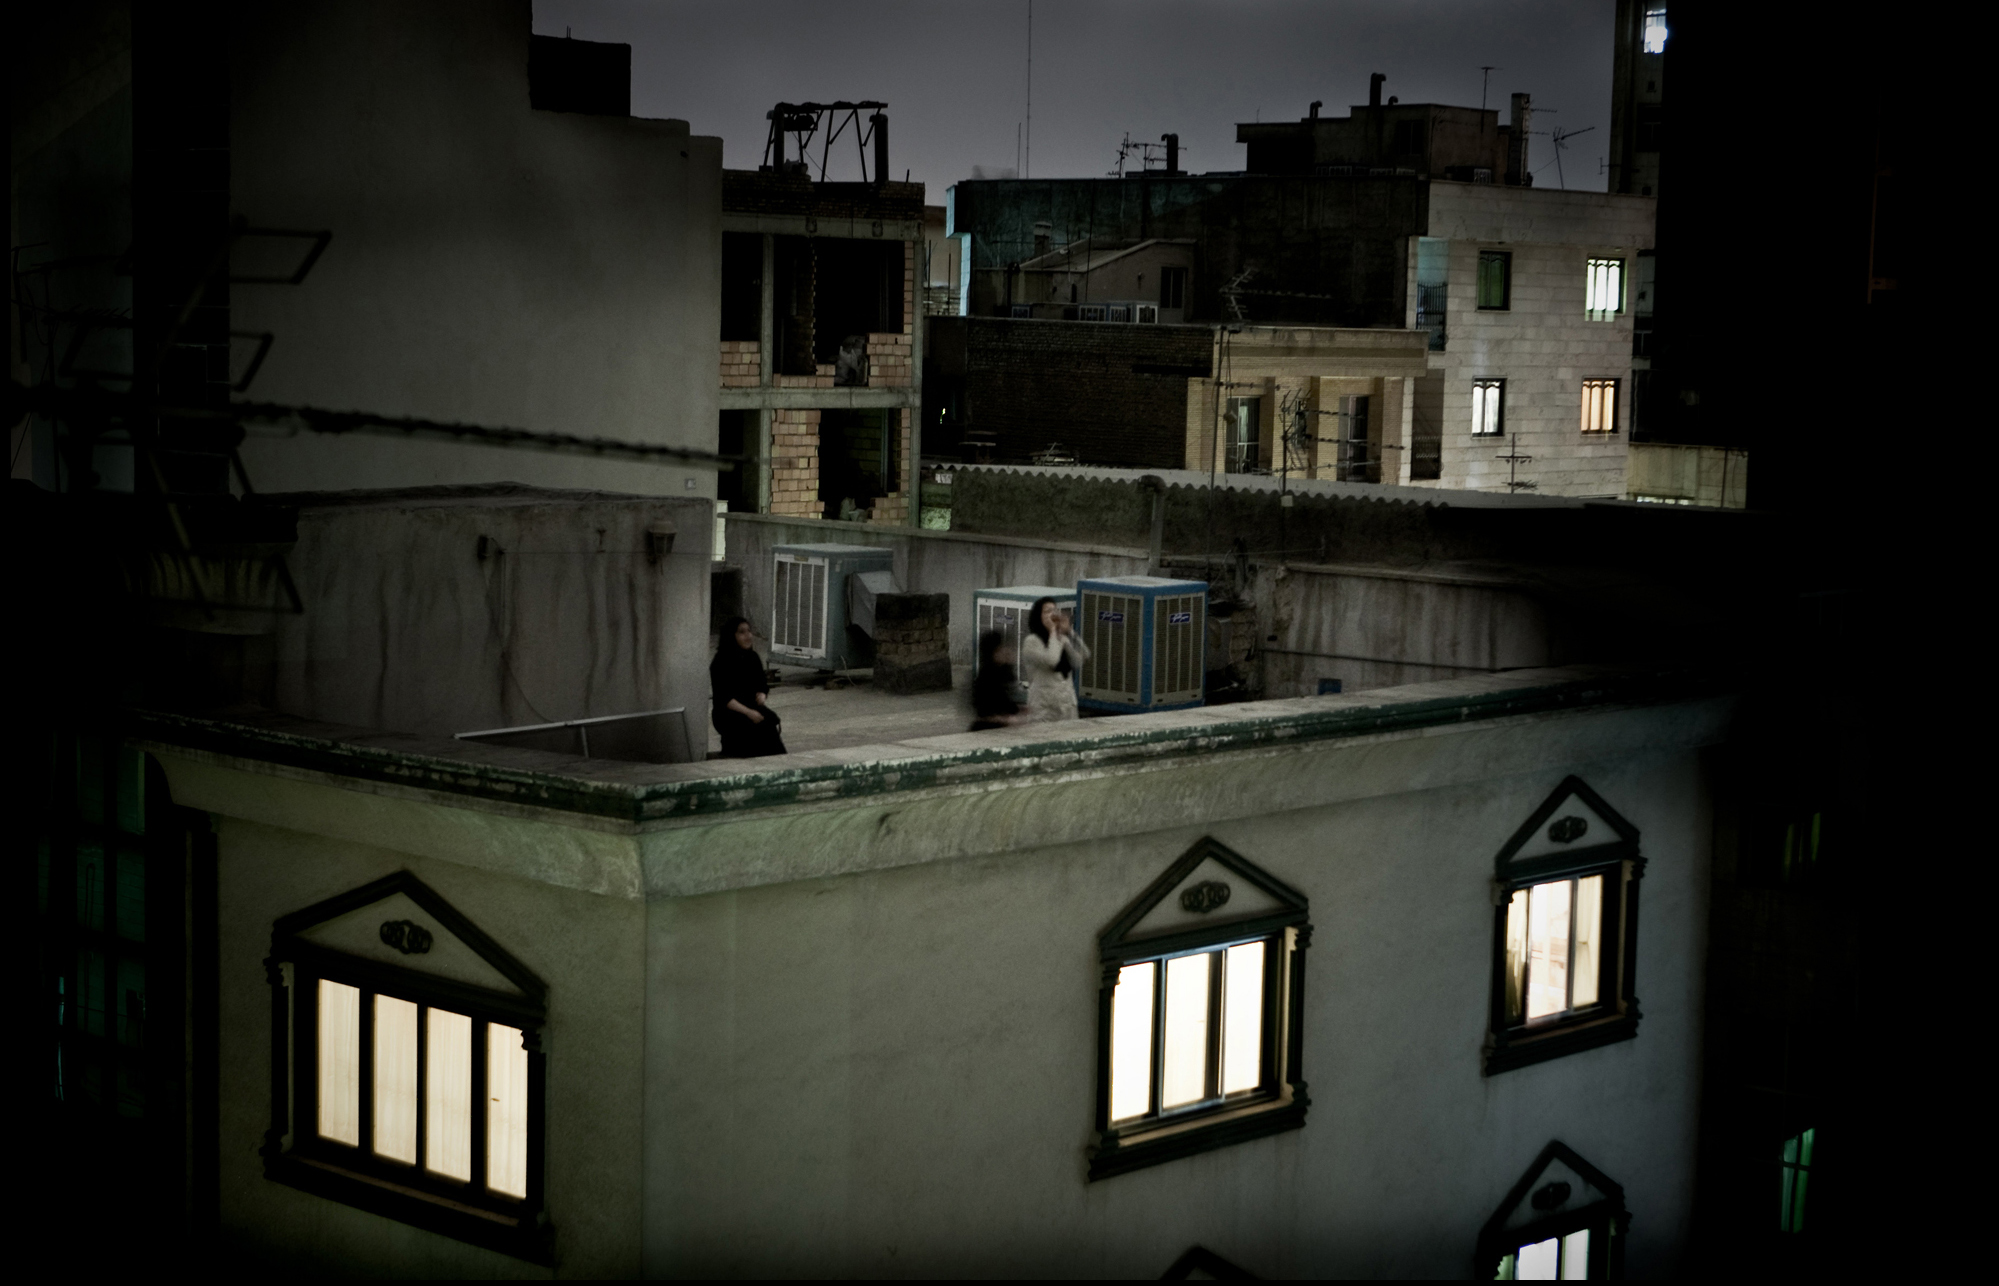 World Press Photo of the Year 2009  Pietro Masturzo, Italy  From the rooftops of Tehran, June